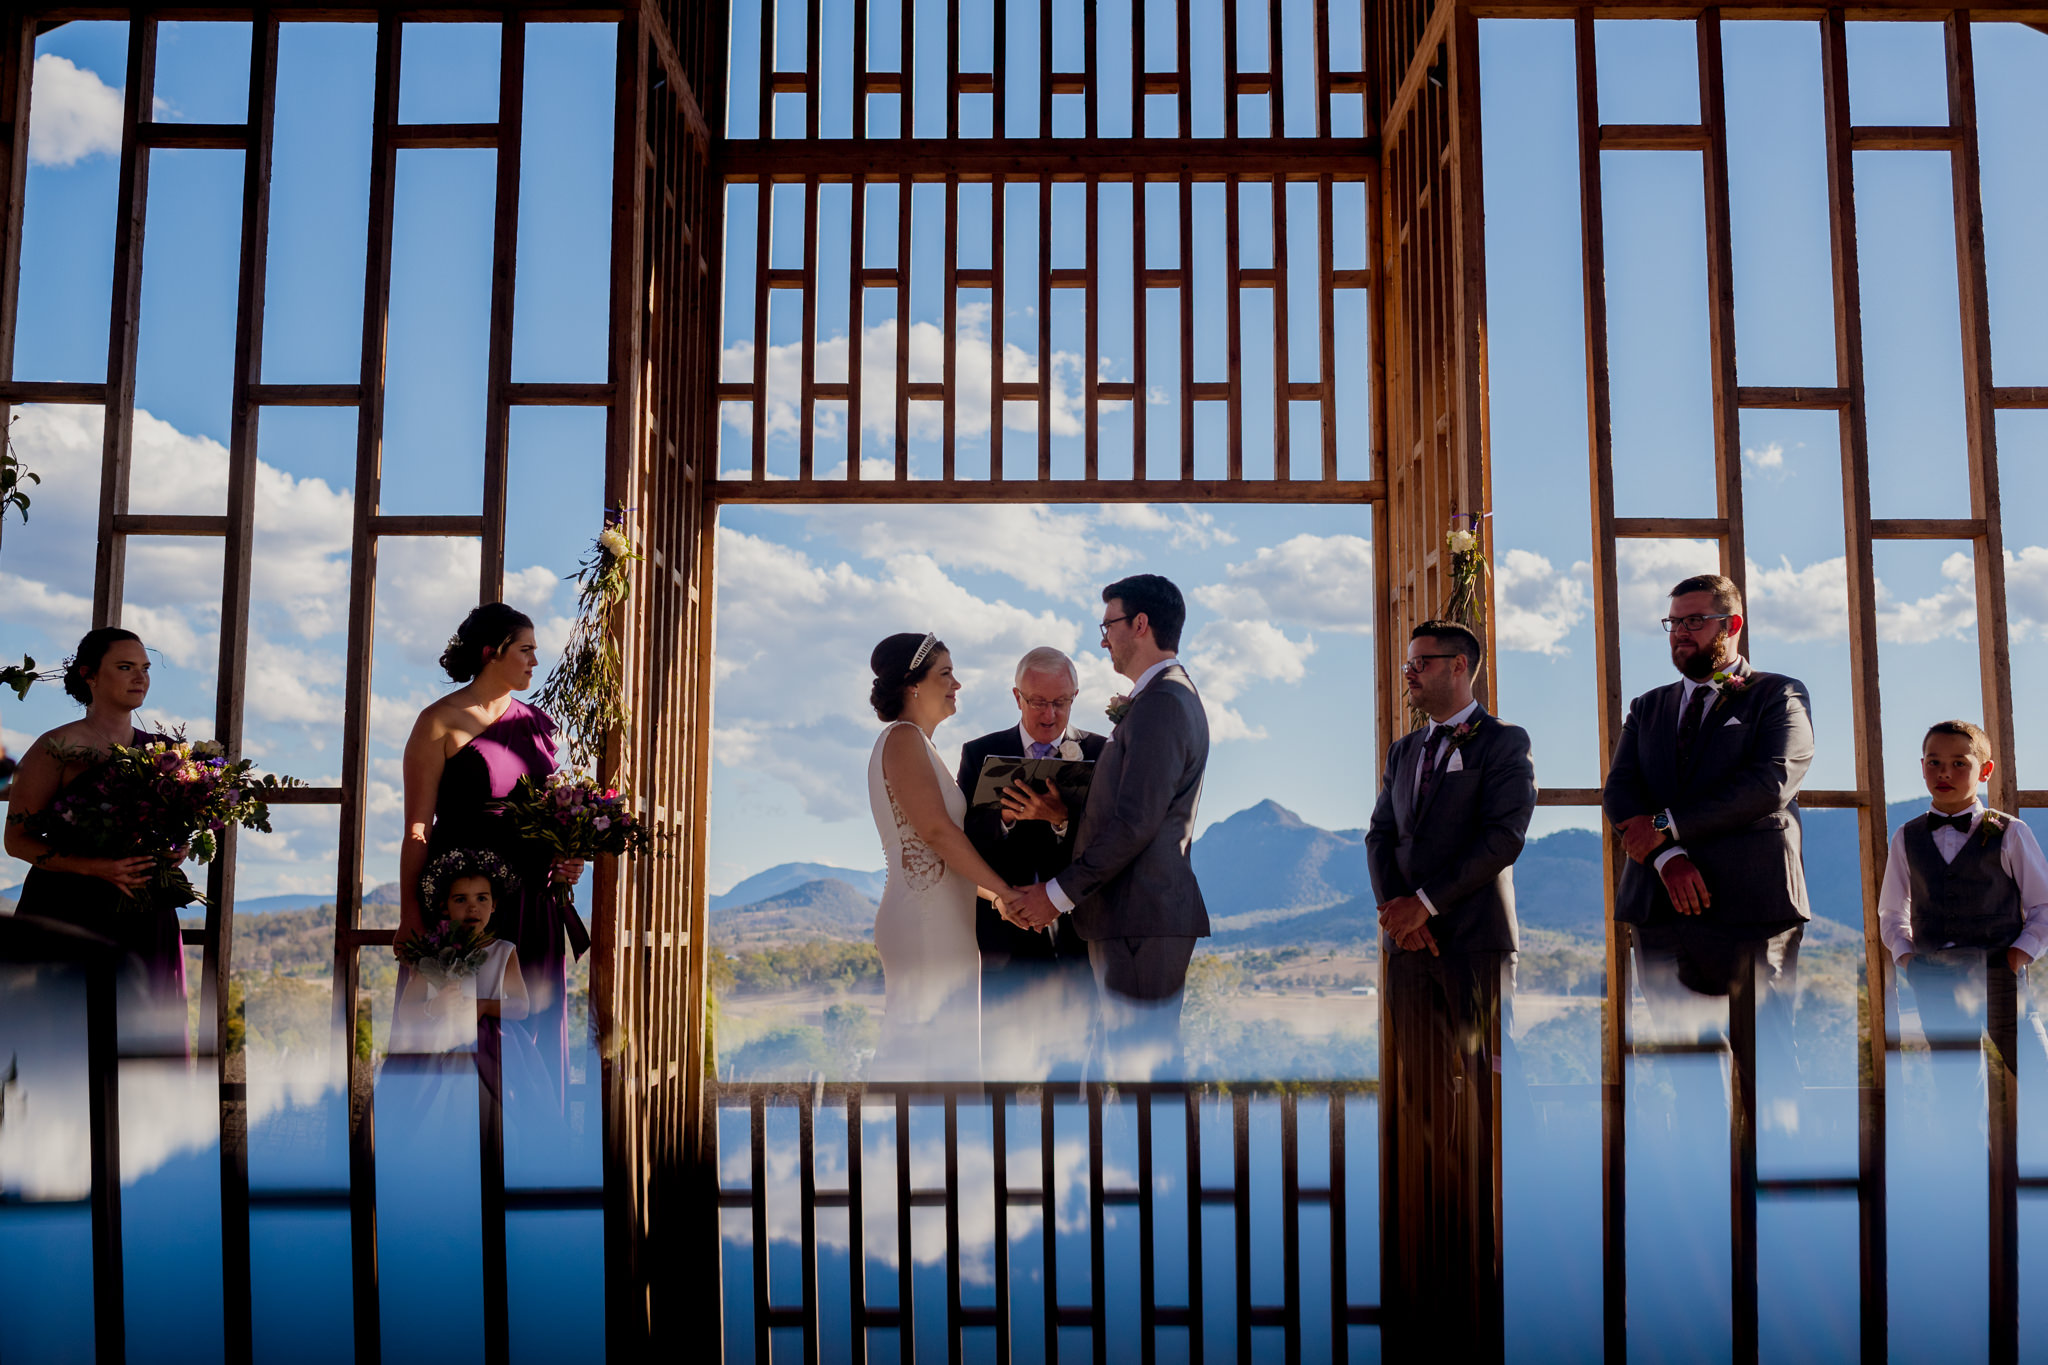 A wedding ceremony in a bare-framed wall in front of a mountain range